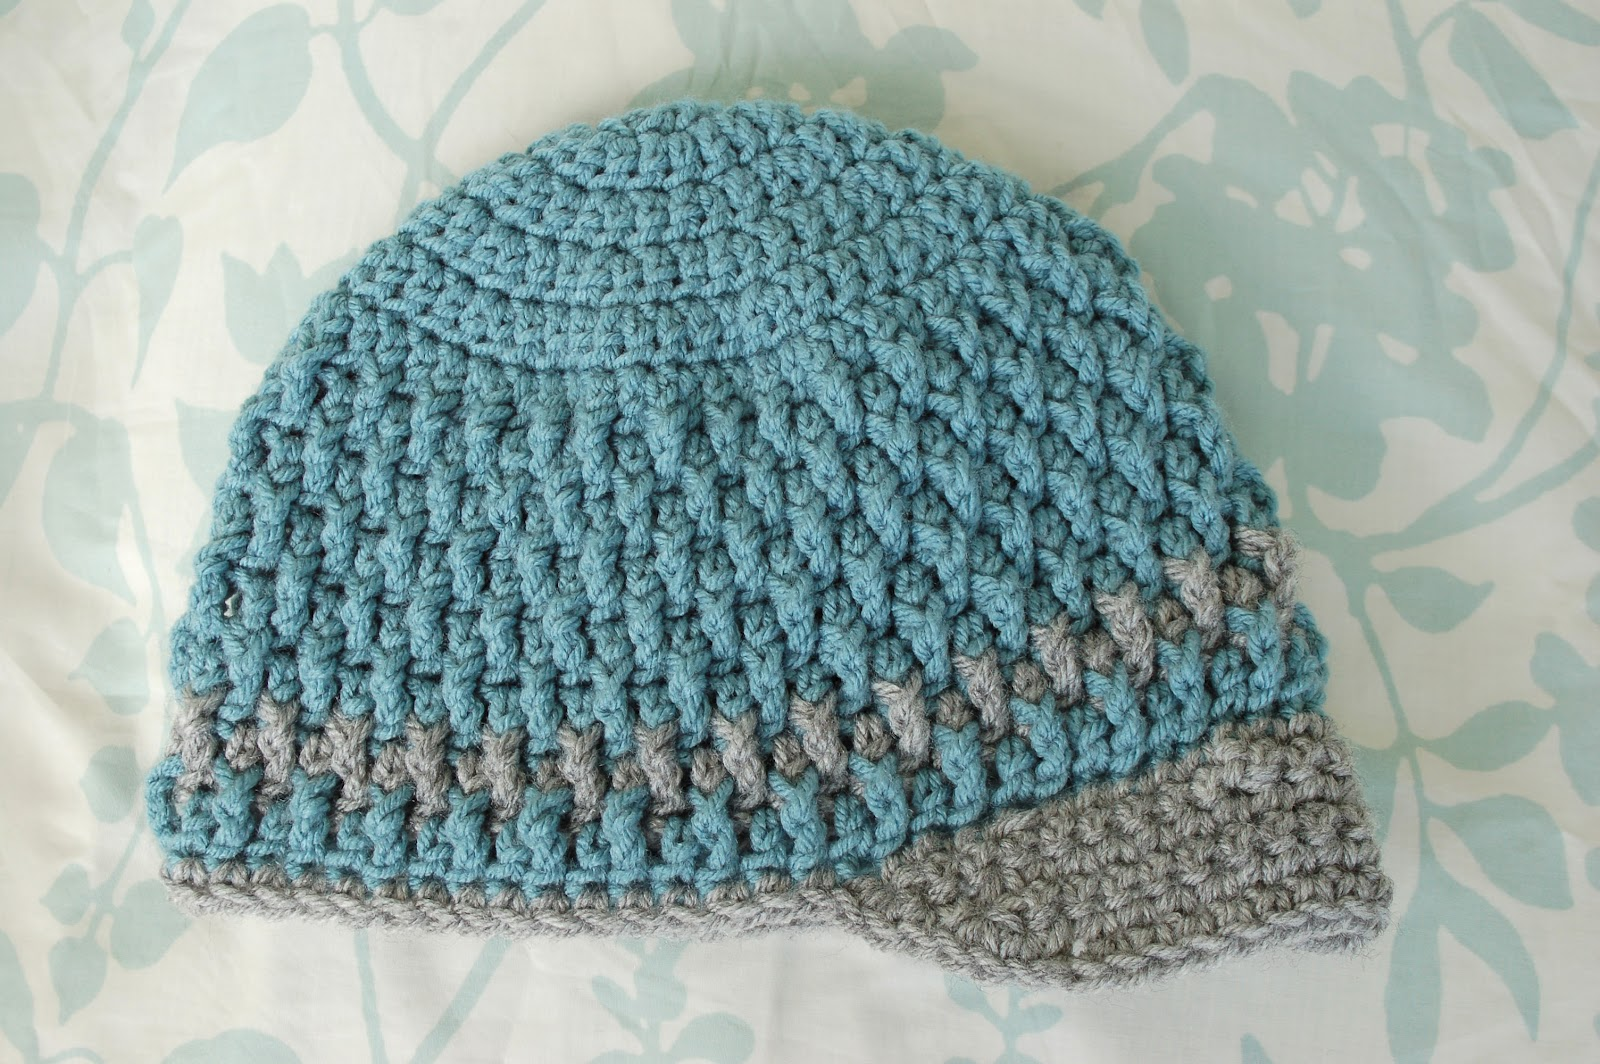 Crochet Baby Beanie Pattern Easy : Alli Crafts: Free Pattern: Deeply Textured Hat - Toddler